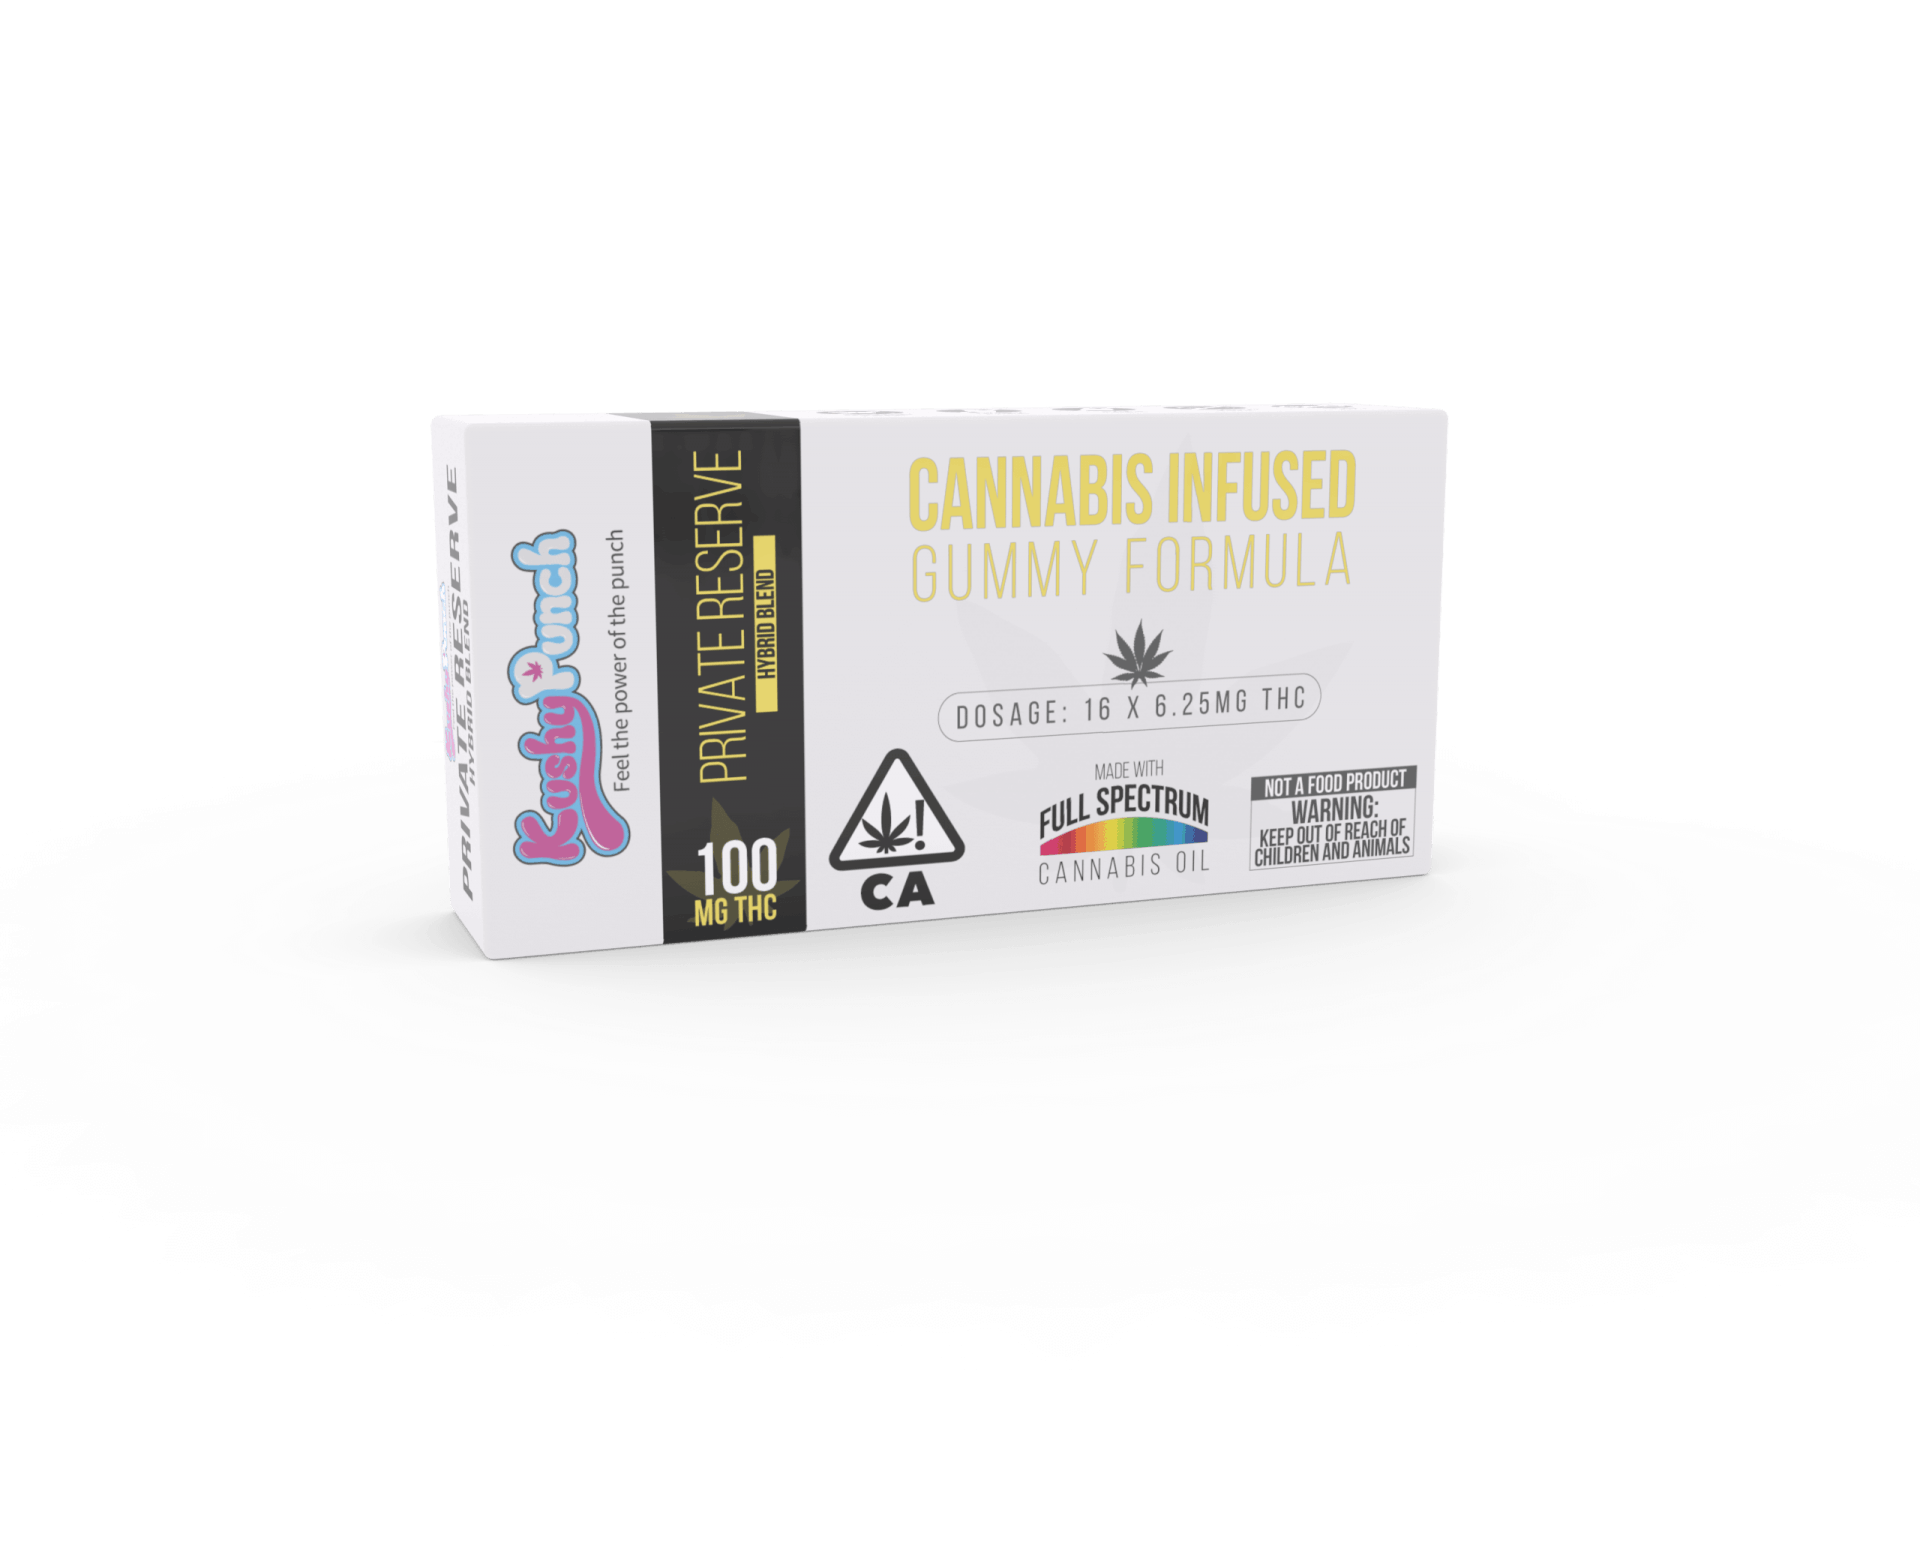 marijuana-dispensaries-hoover-greens-10g-for-2445-in-los-angeles-kushy-punch-private-reserve-100mg